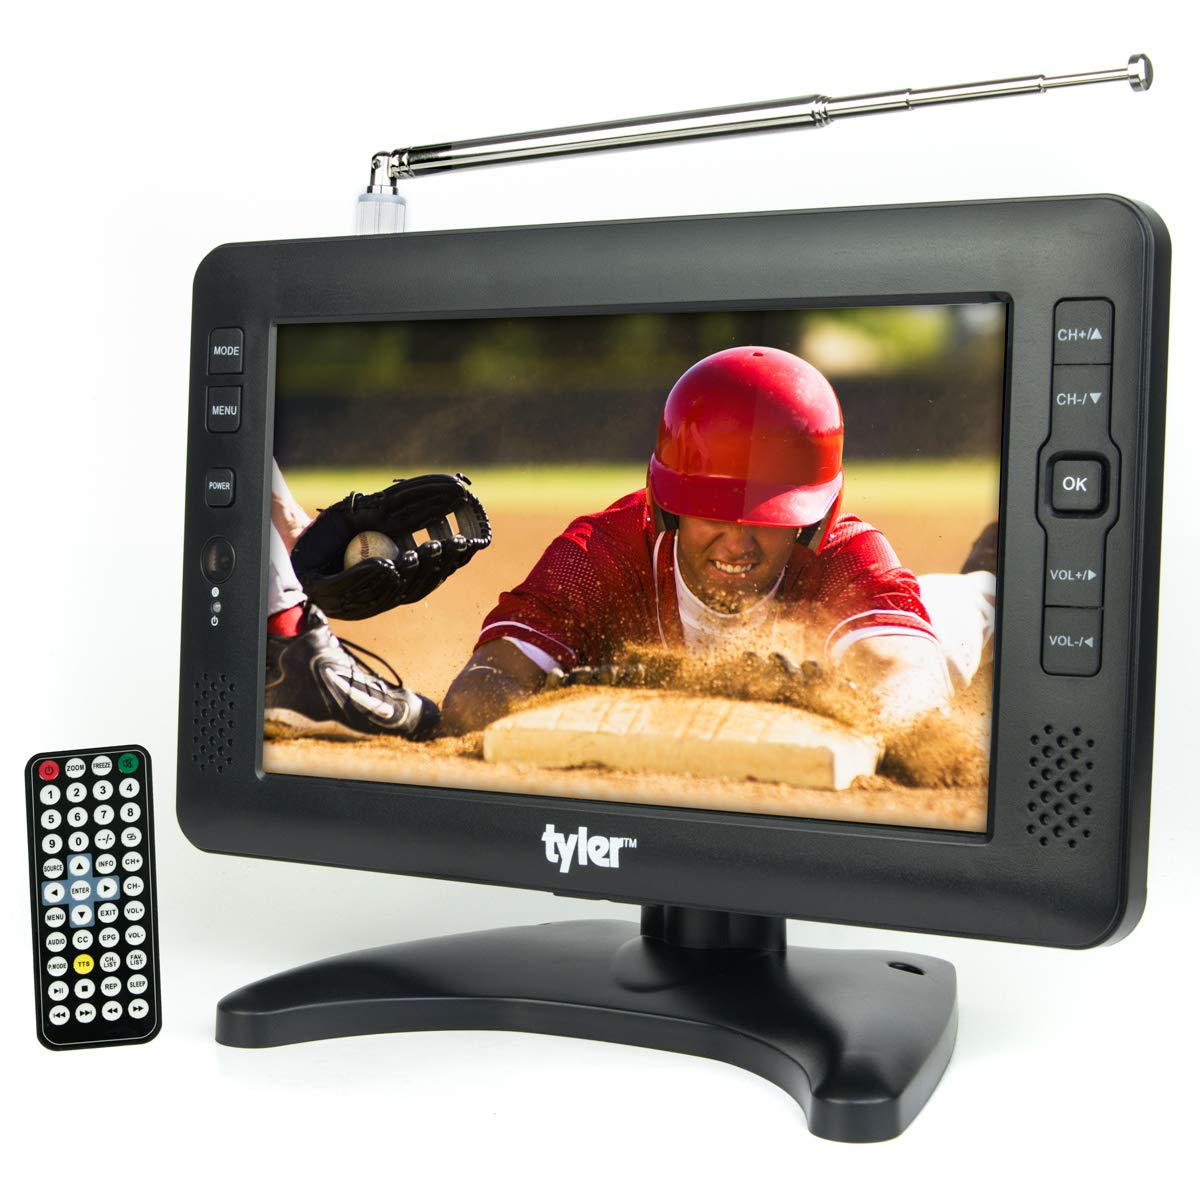 Tyler TTV704-9 Portable Widescreen LCD TV with Detachable Antennas, USB/SD Card Slot, Built in Digital Tuner, and AV Inputs